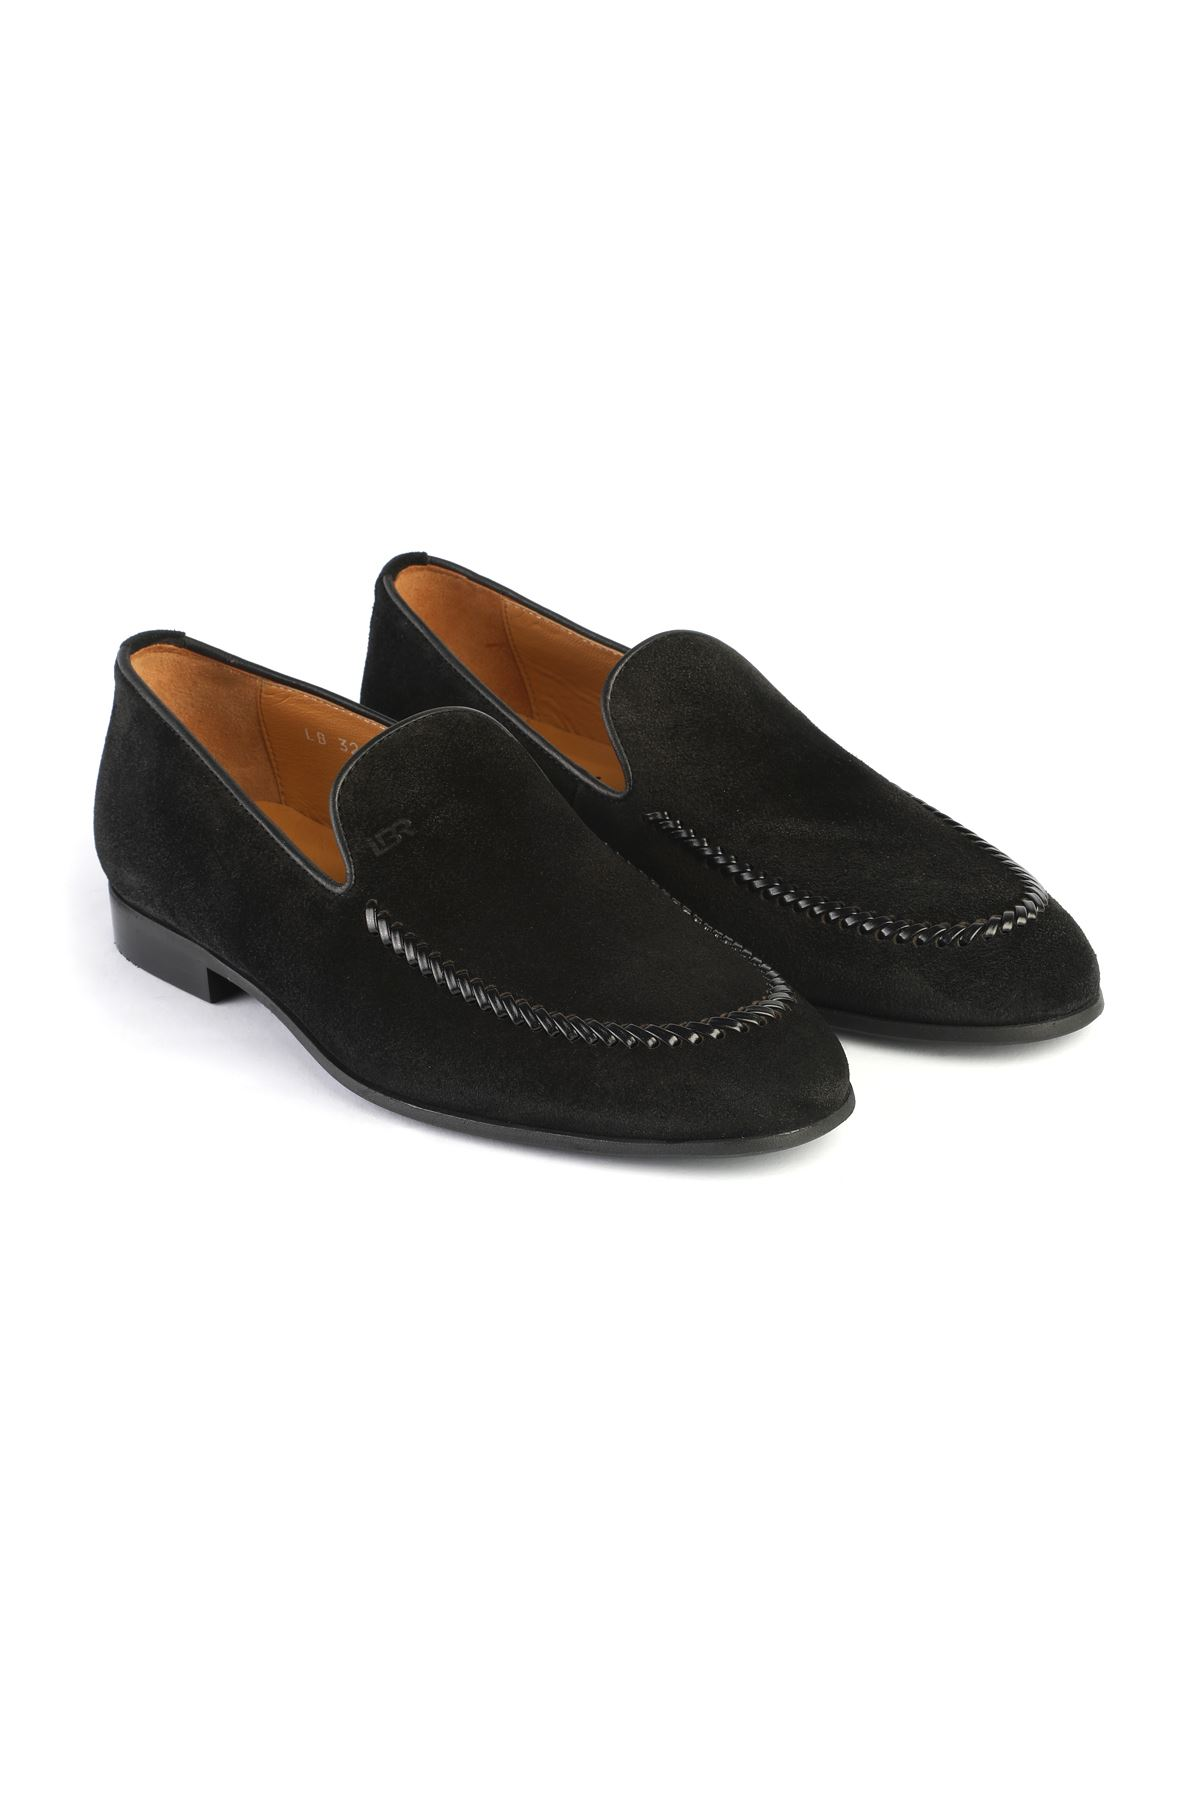 Libero 3260 Black Loafer Shoes